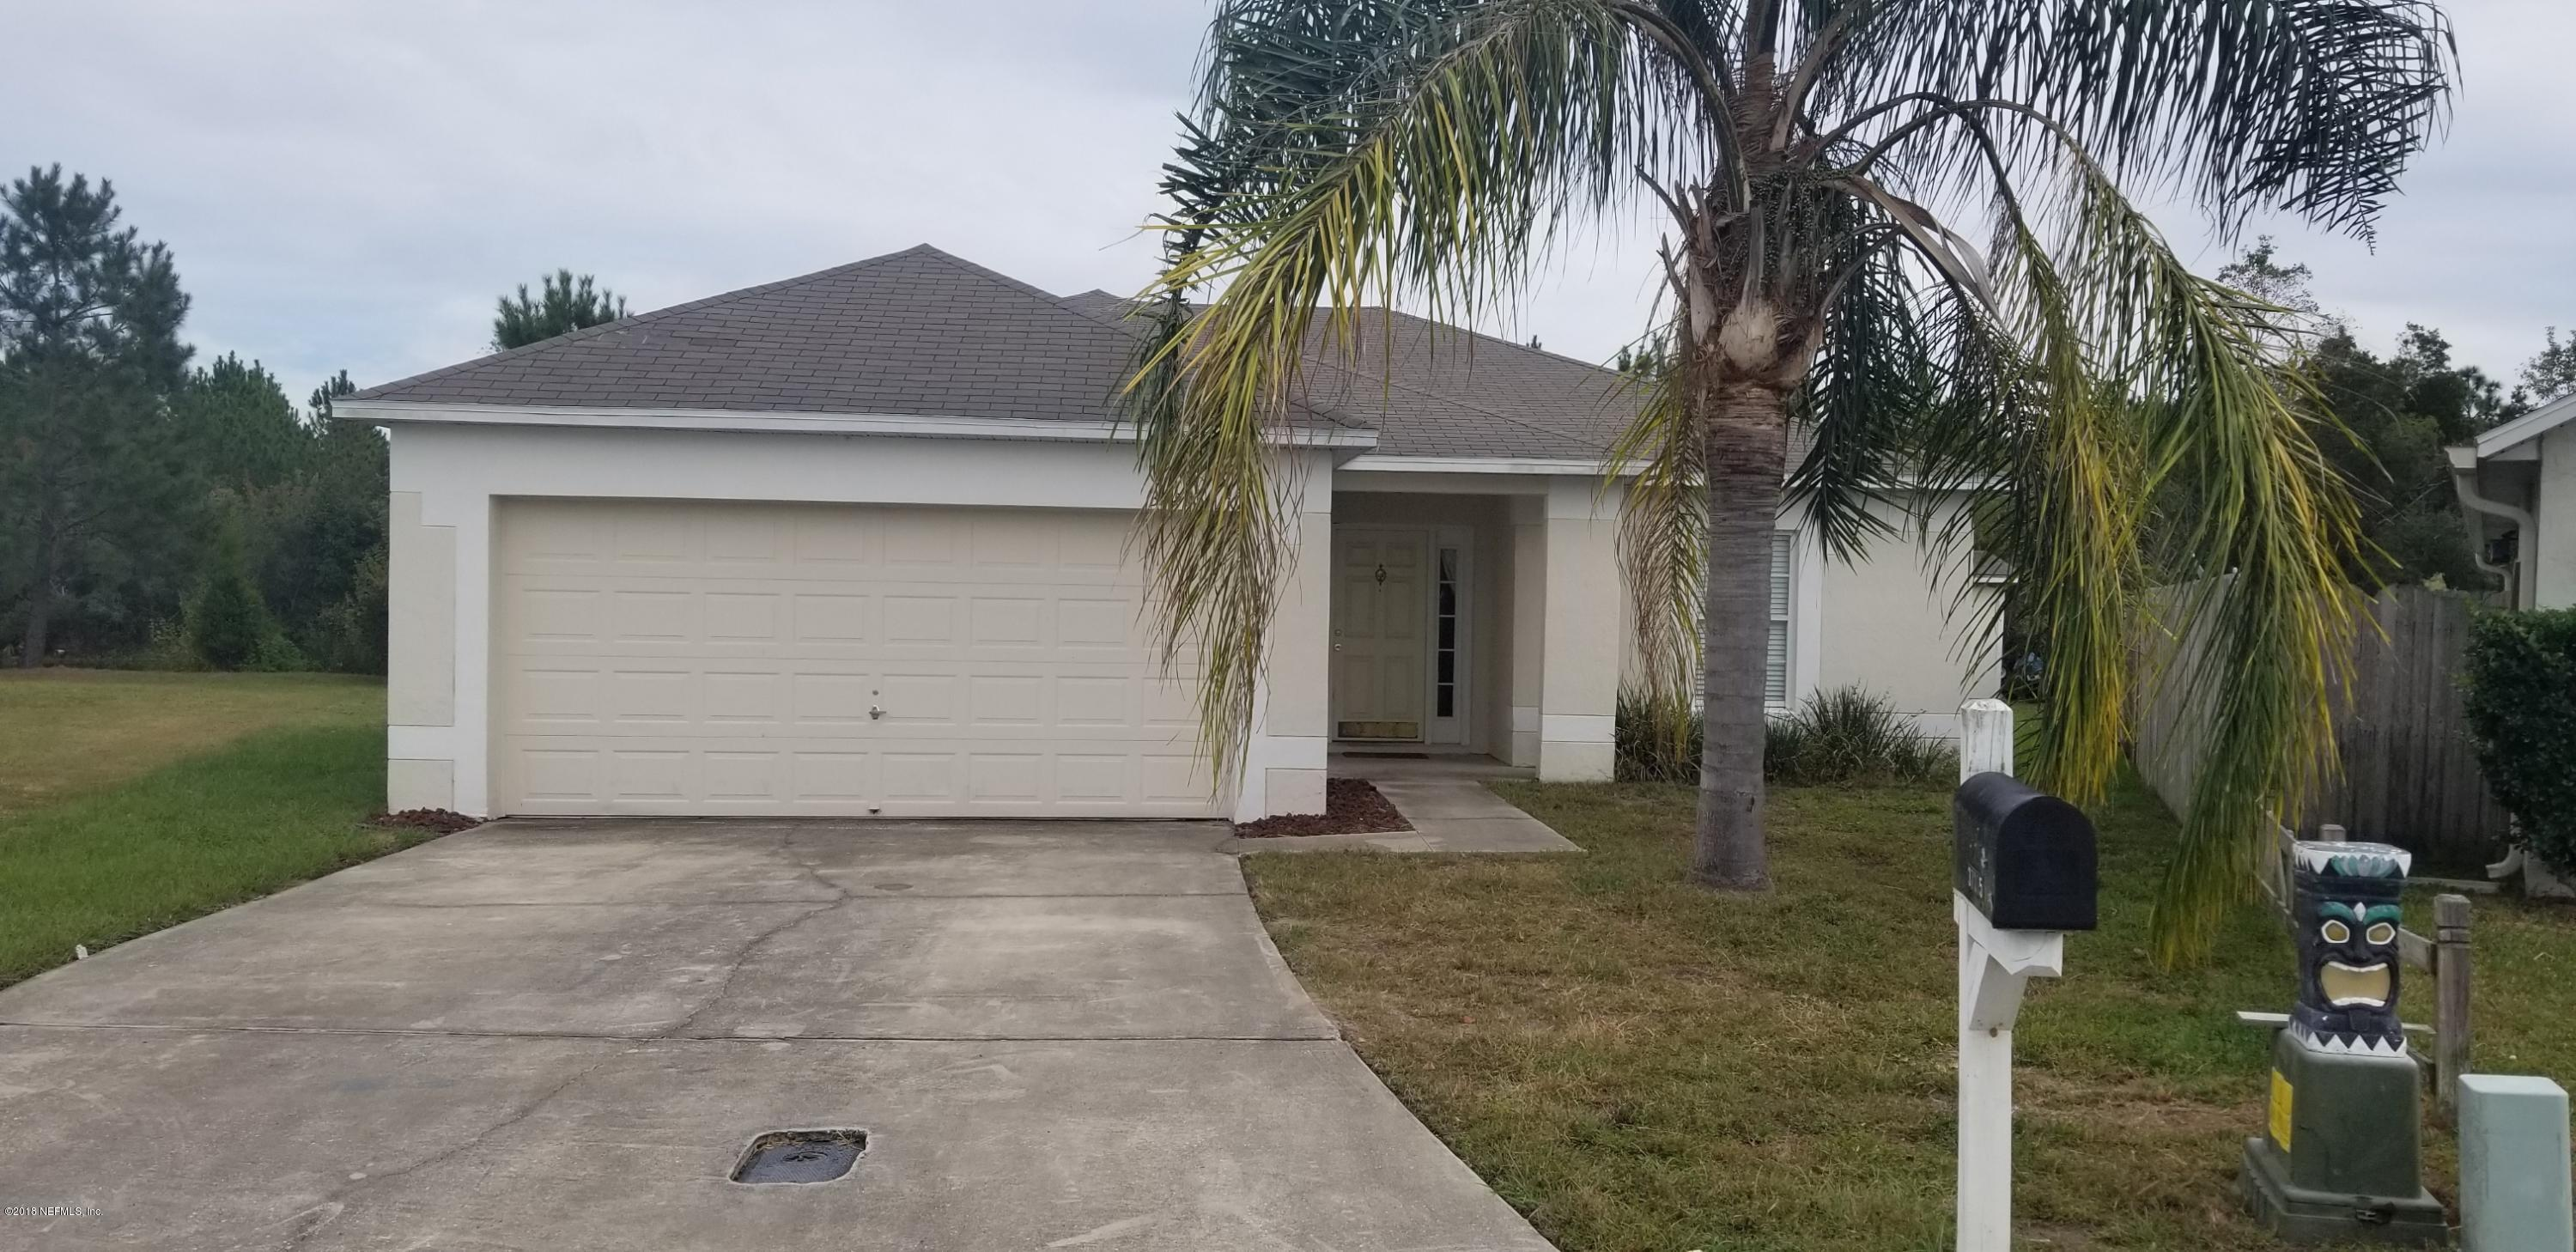 37205 SOUTHERN GLEN, HILLIARD, FLORIDA 32046, 3 Bedrooms Bedrooms, ,2 BathroomsBathrooms,Residential - single family,For sale,SOUTHERN GLEN,965281